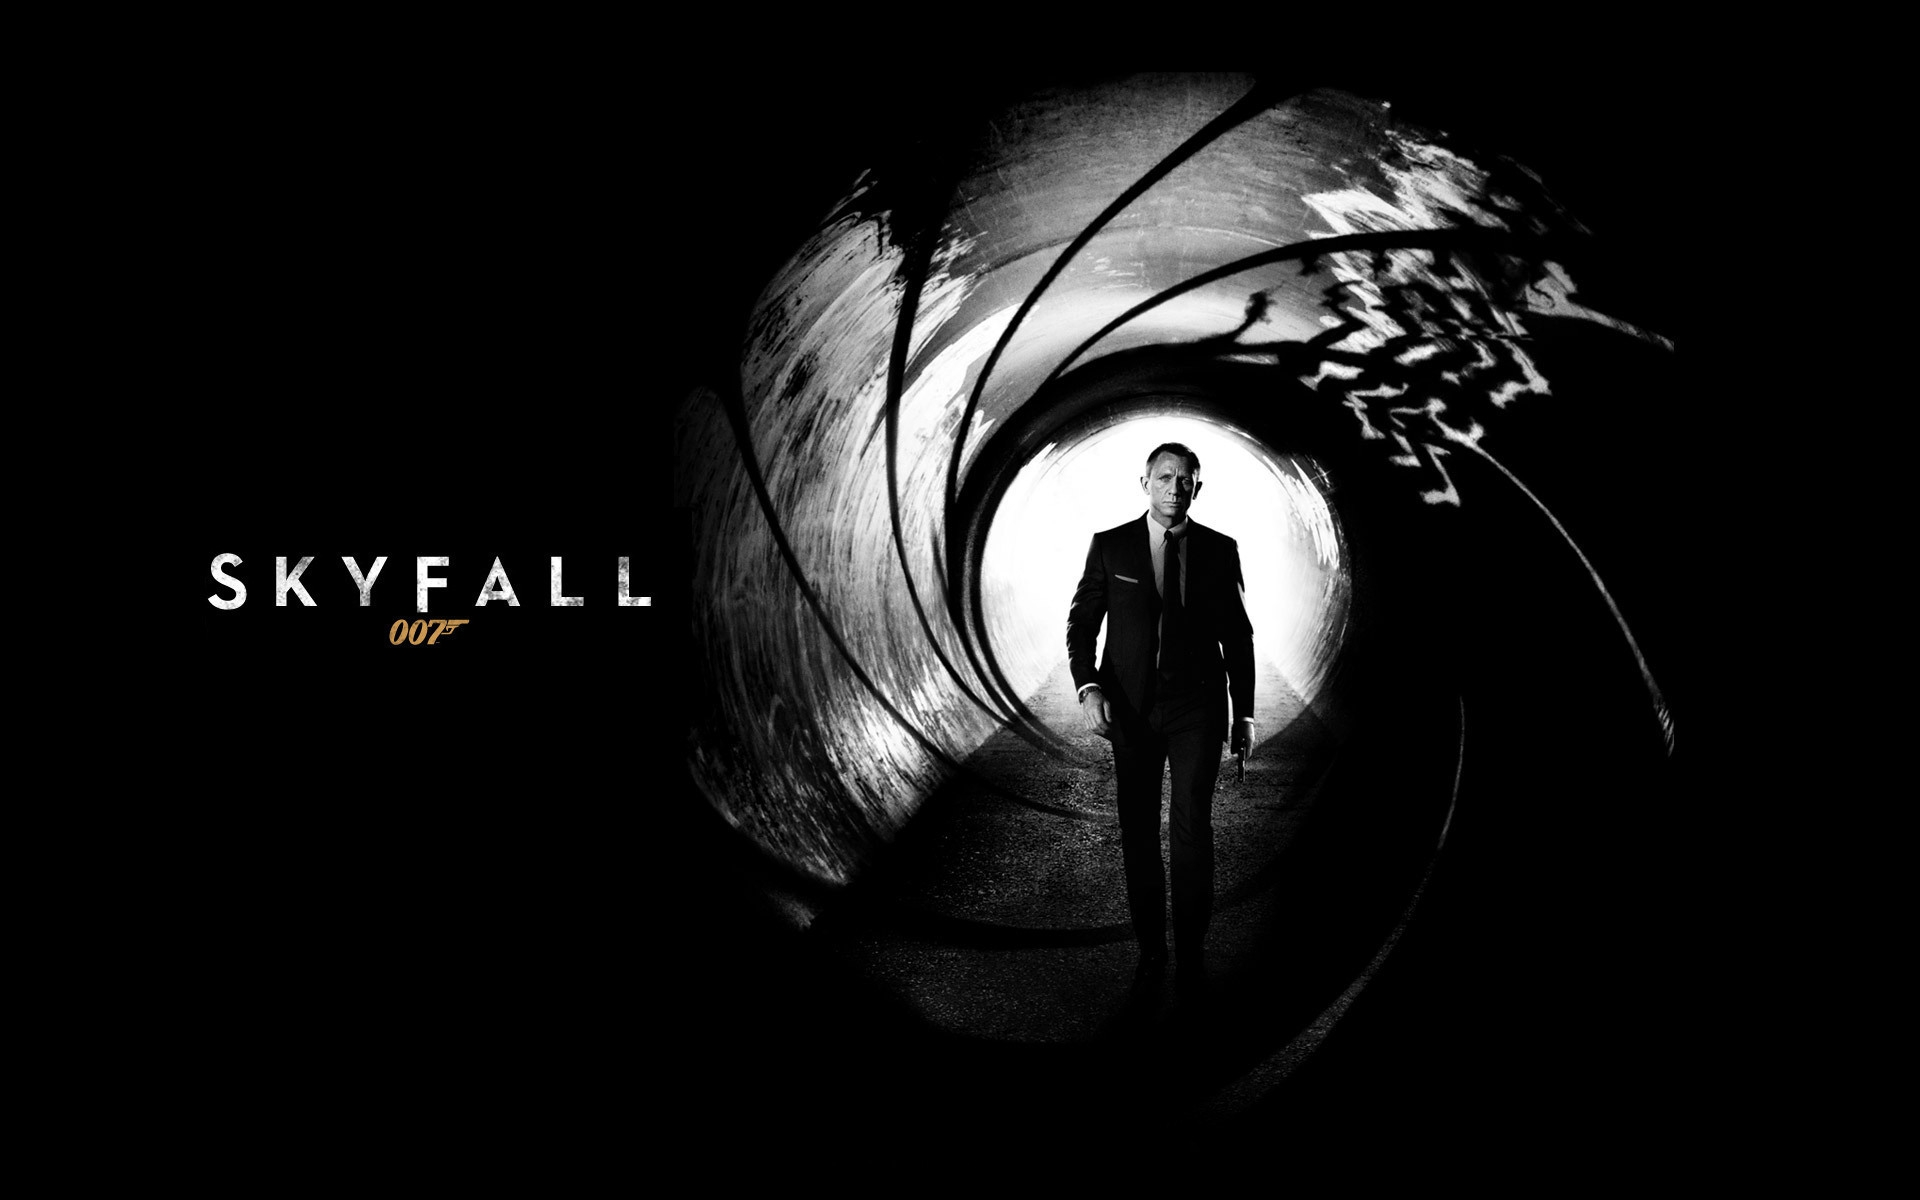 James Bond: Skyfall